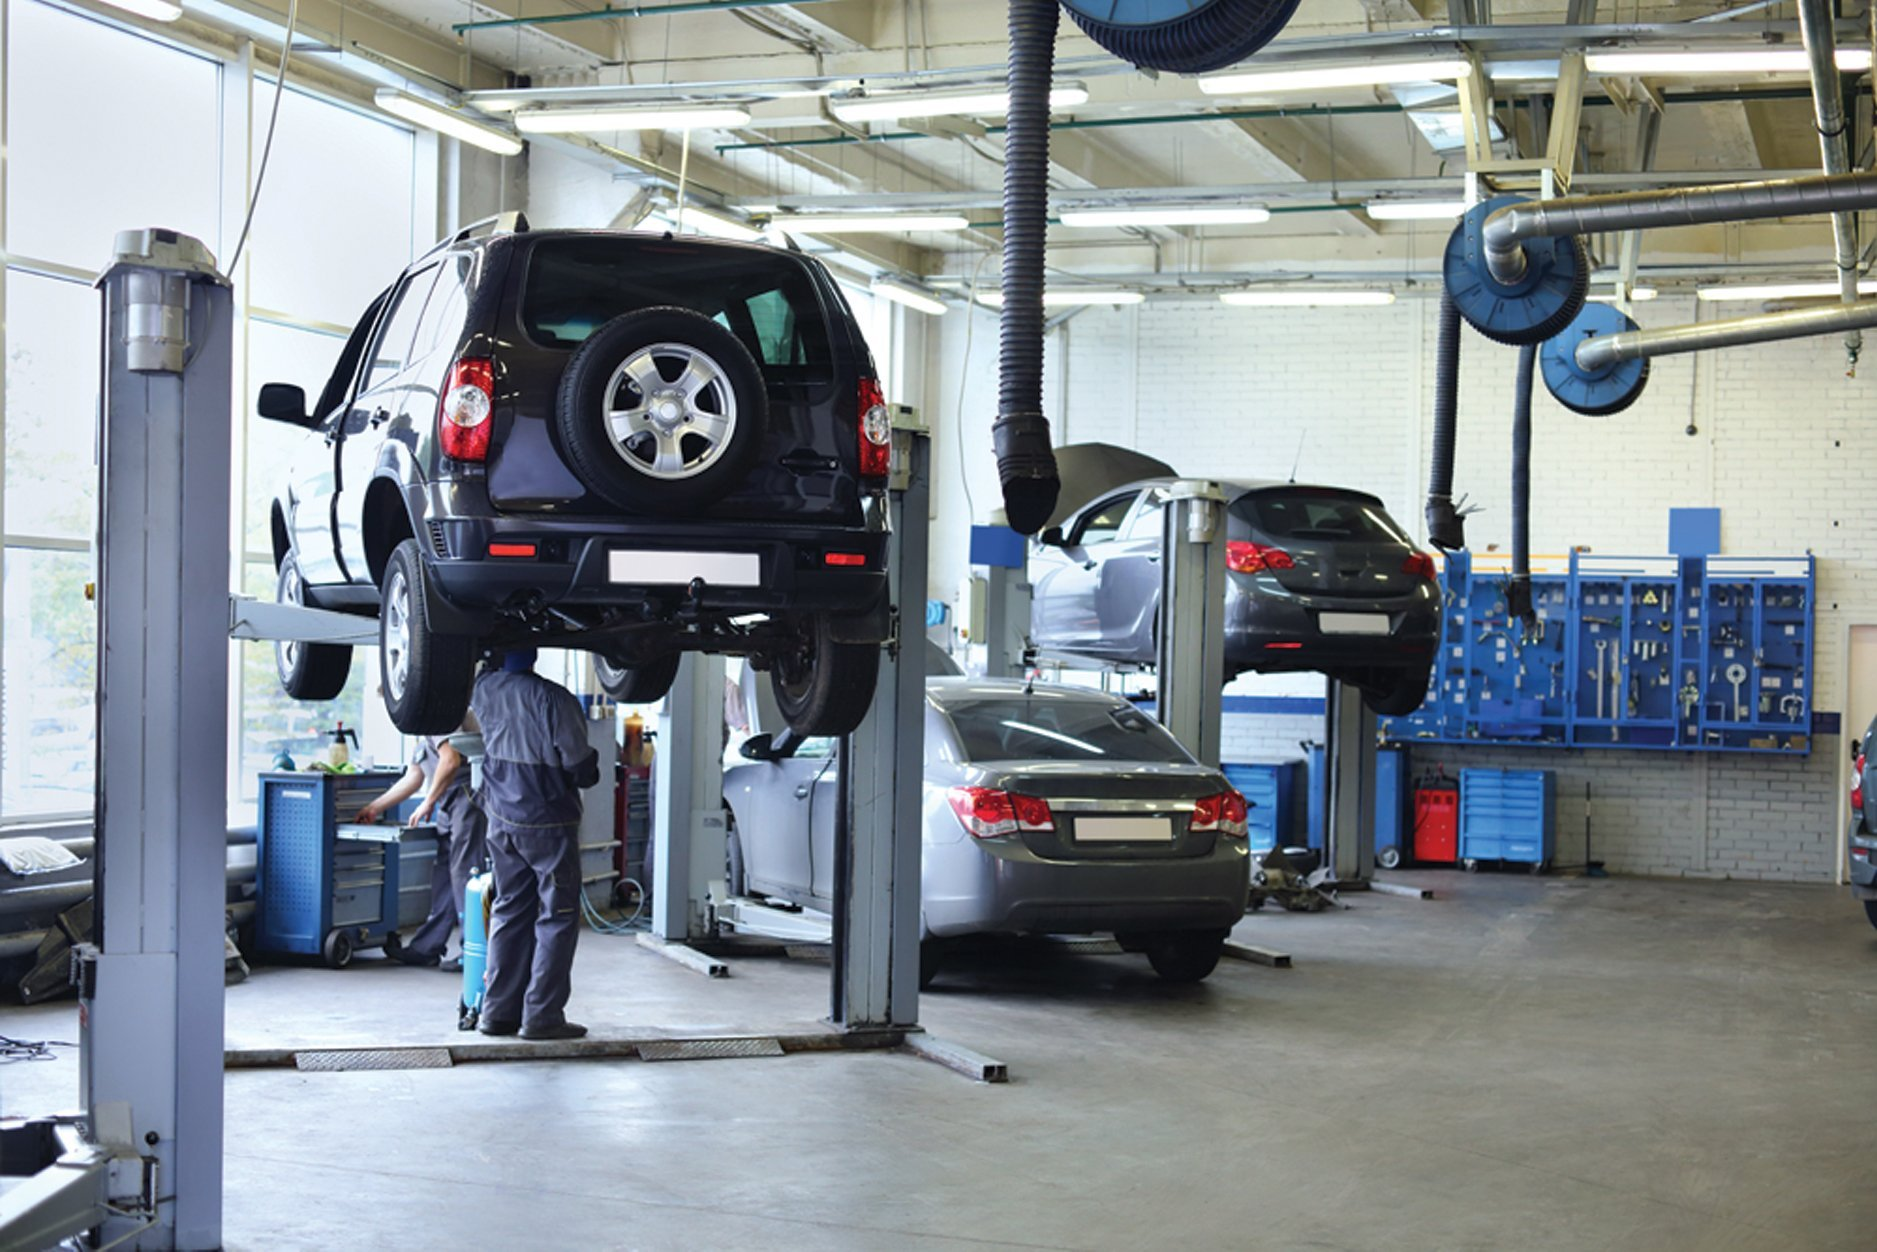 Auto repair shops near me and reviews - Logan Square Auto Repair